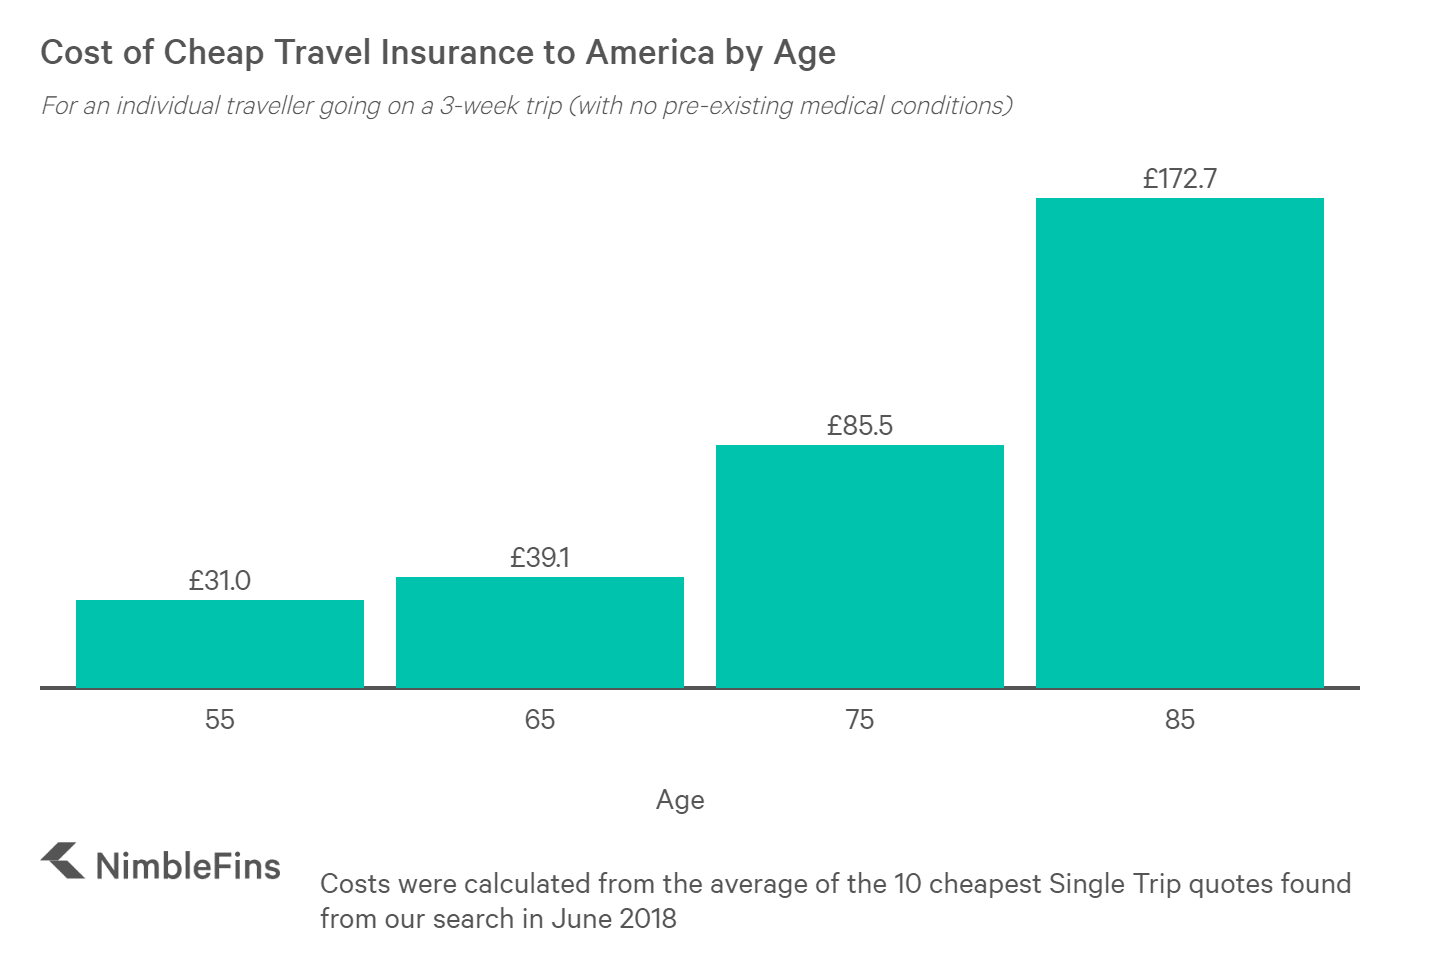 chart showing the cost of travel insurance to America with age